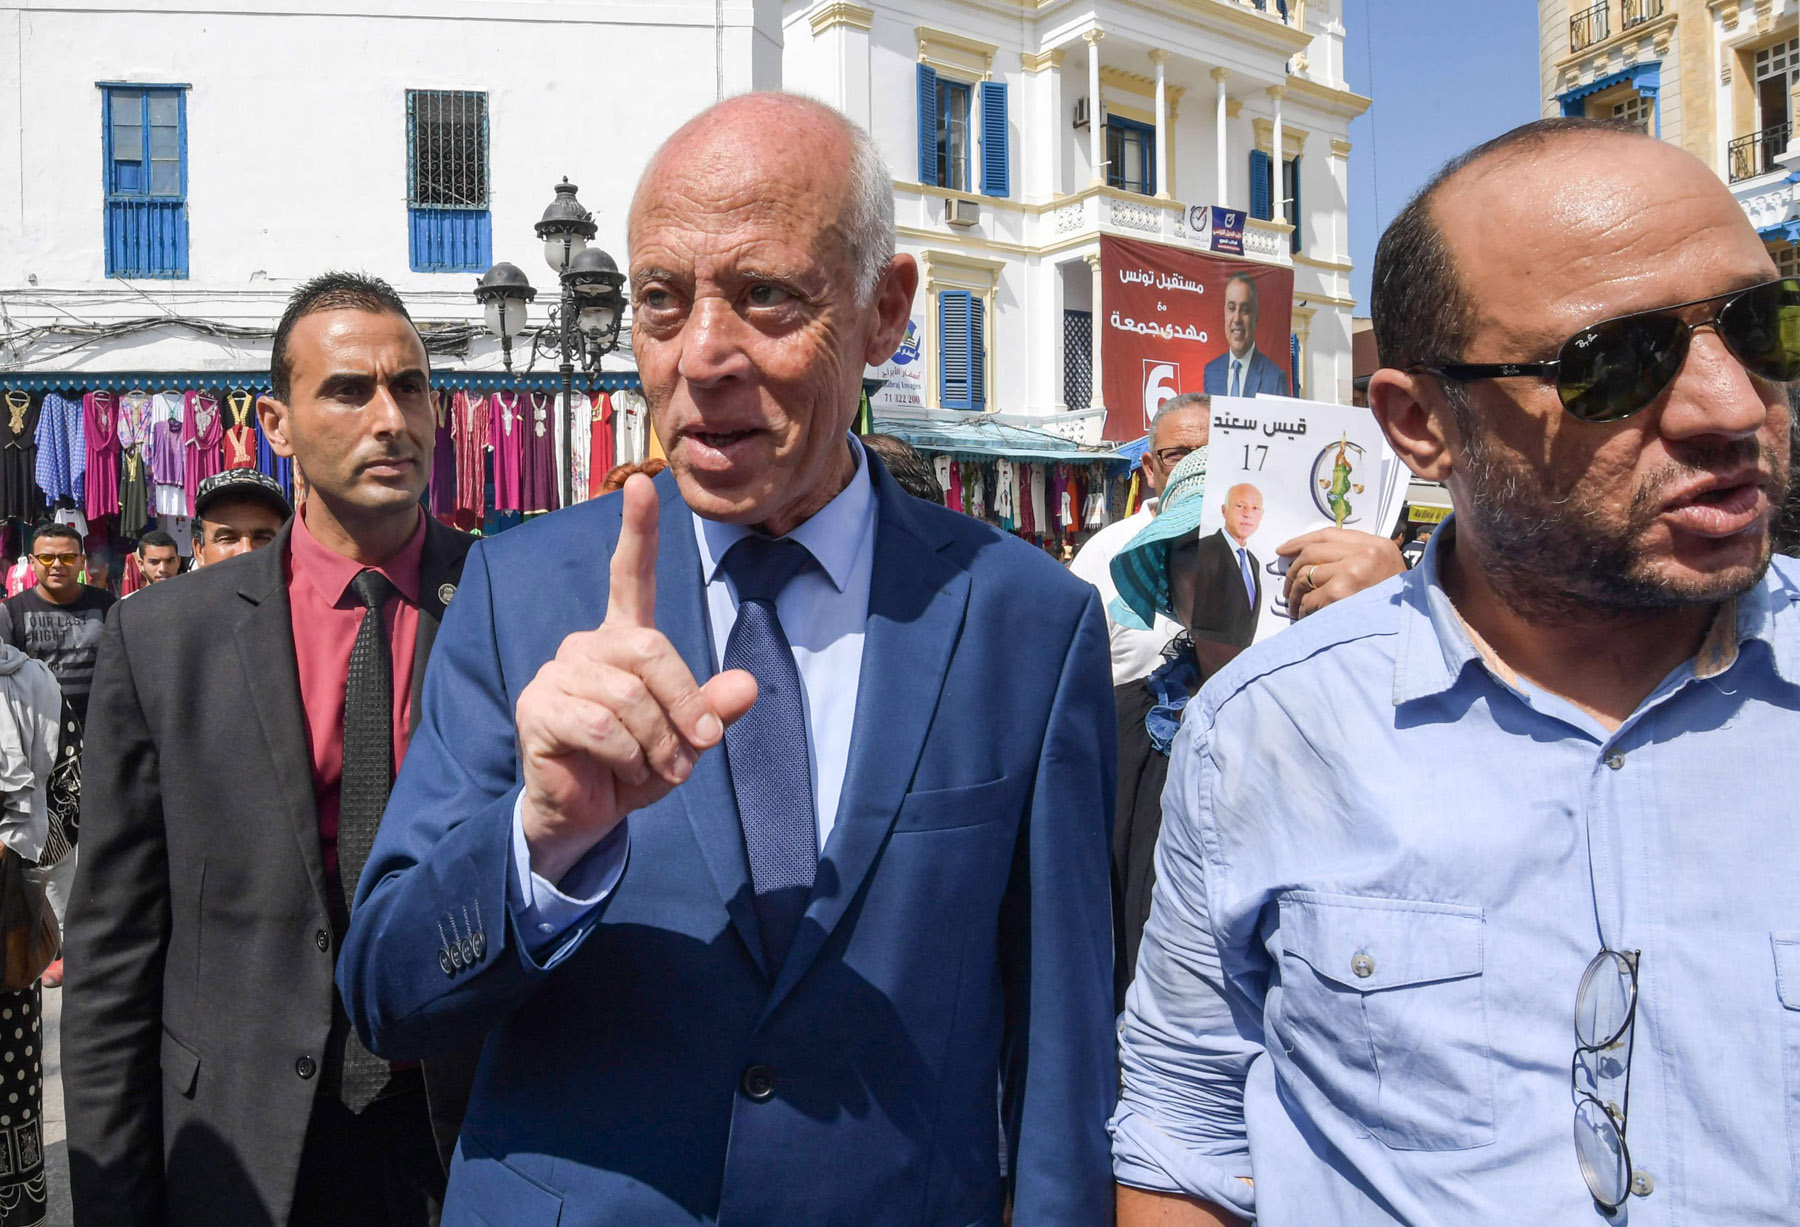 Kais Said, a Tunisian presidential candidate, speaks with people during an electoral campaign tour at an outdoor market in the capital Tunis on September 10. (AFP)